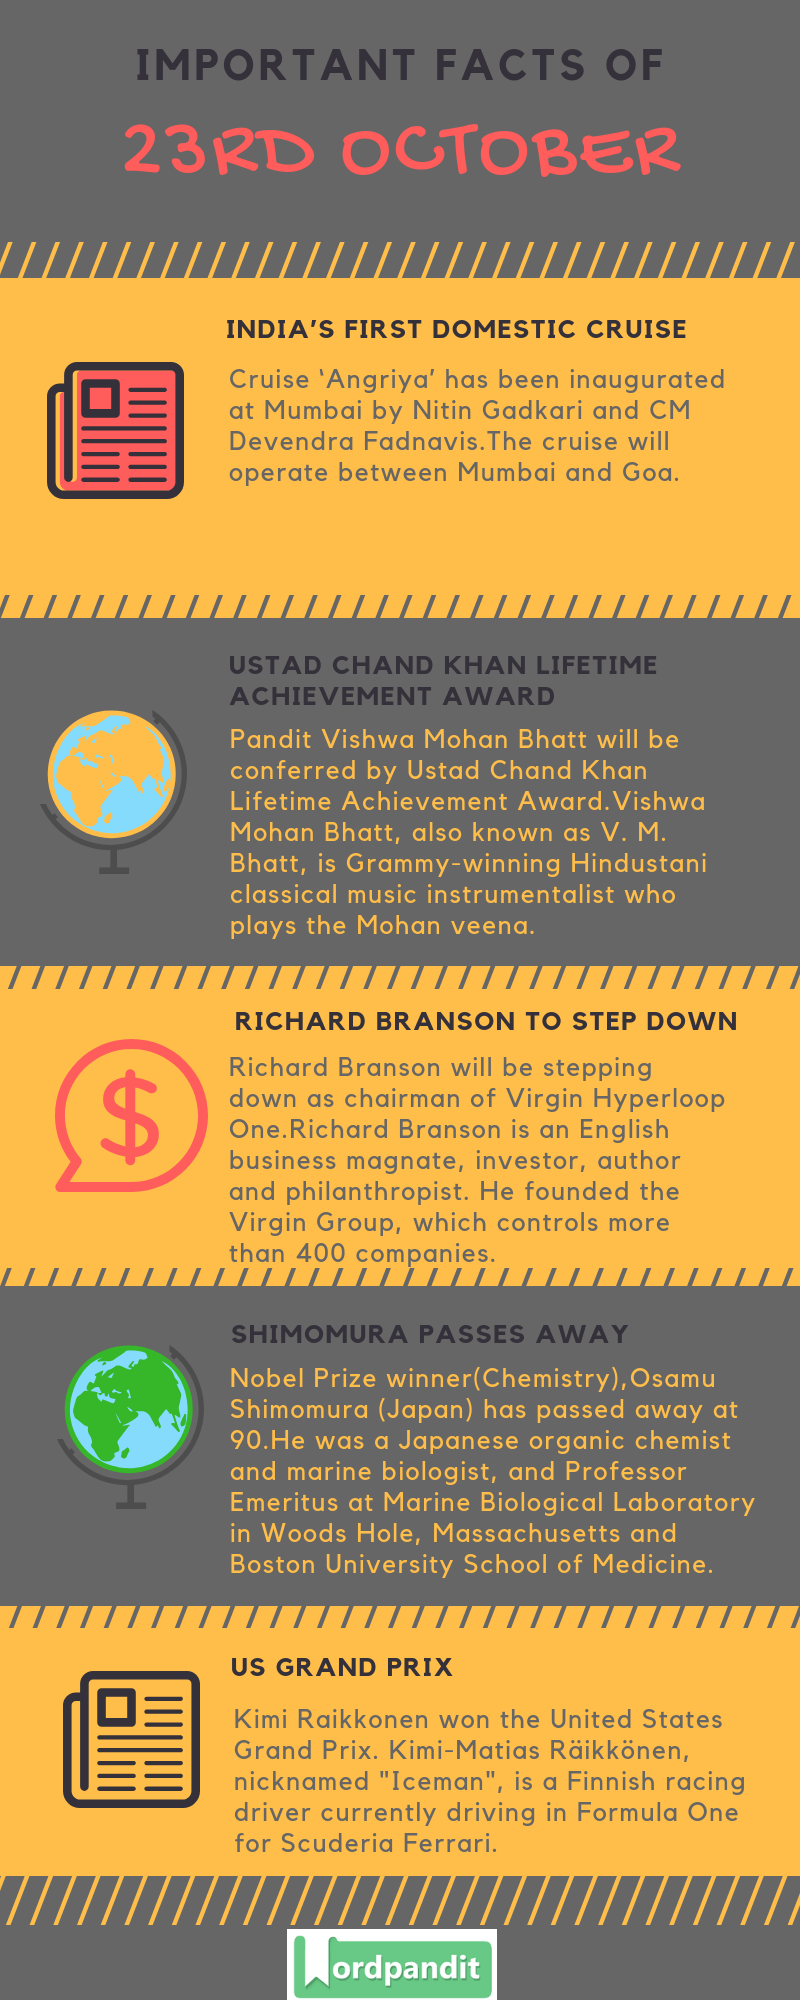 Daily Current Affairs 23 October 2018 Current Affairs Quiz 23 October 2018 Current Affairs Infographic